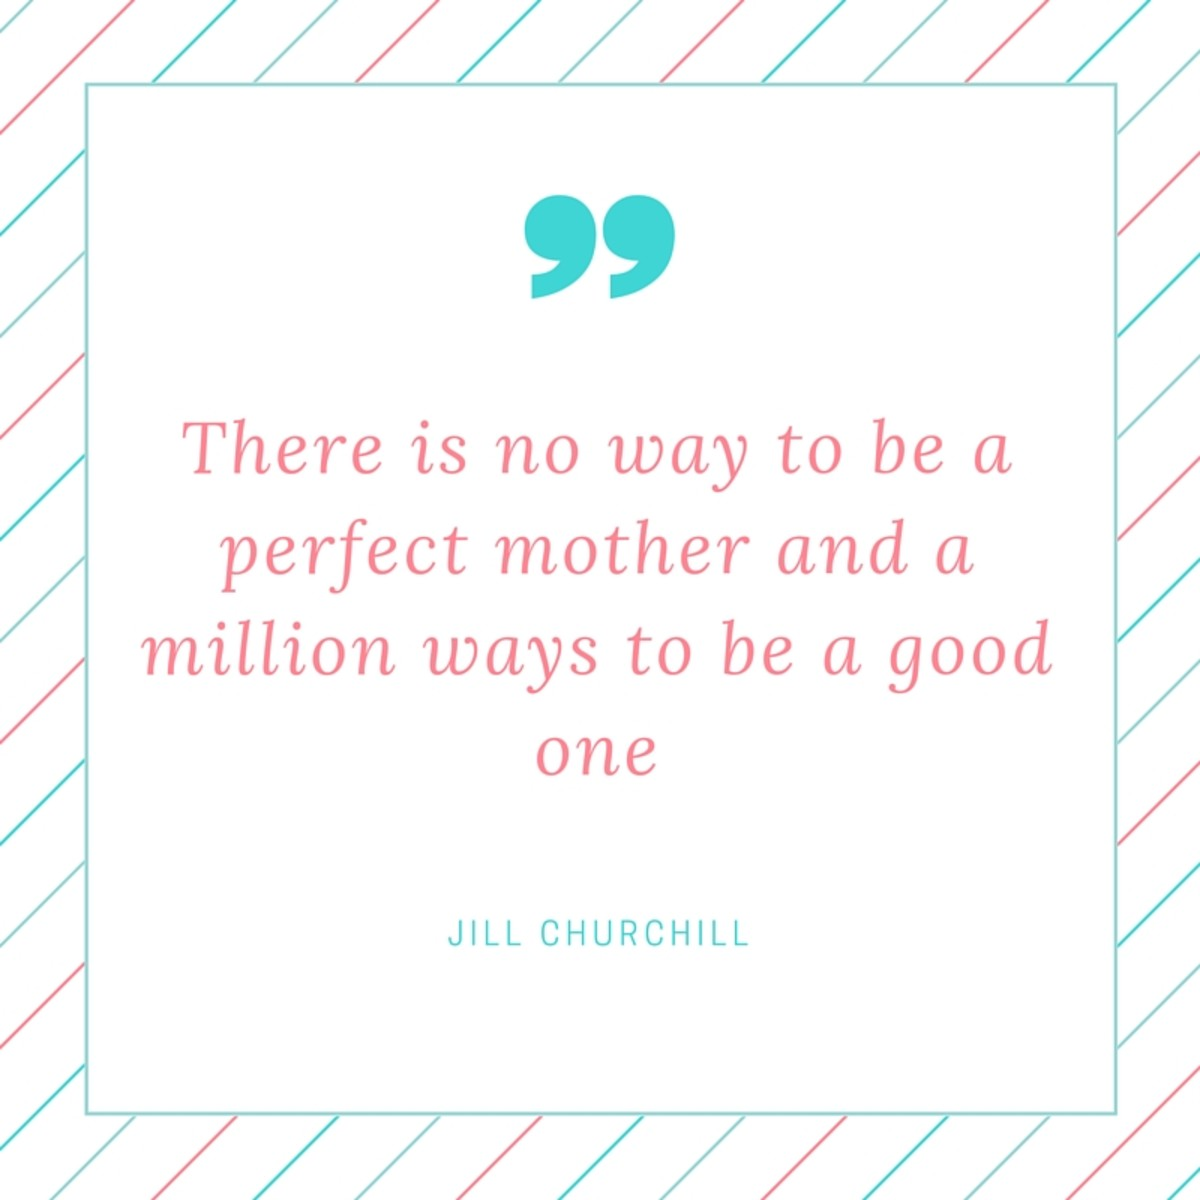 There is no way to be a perfect mother and a million ways to be a good one